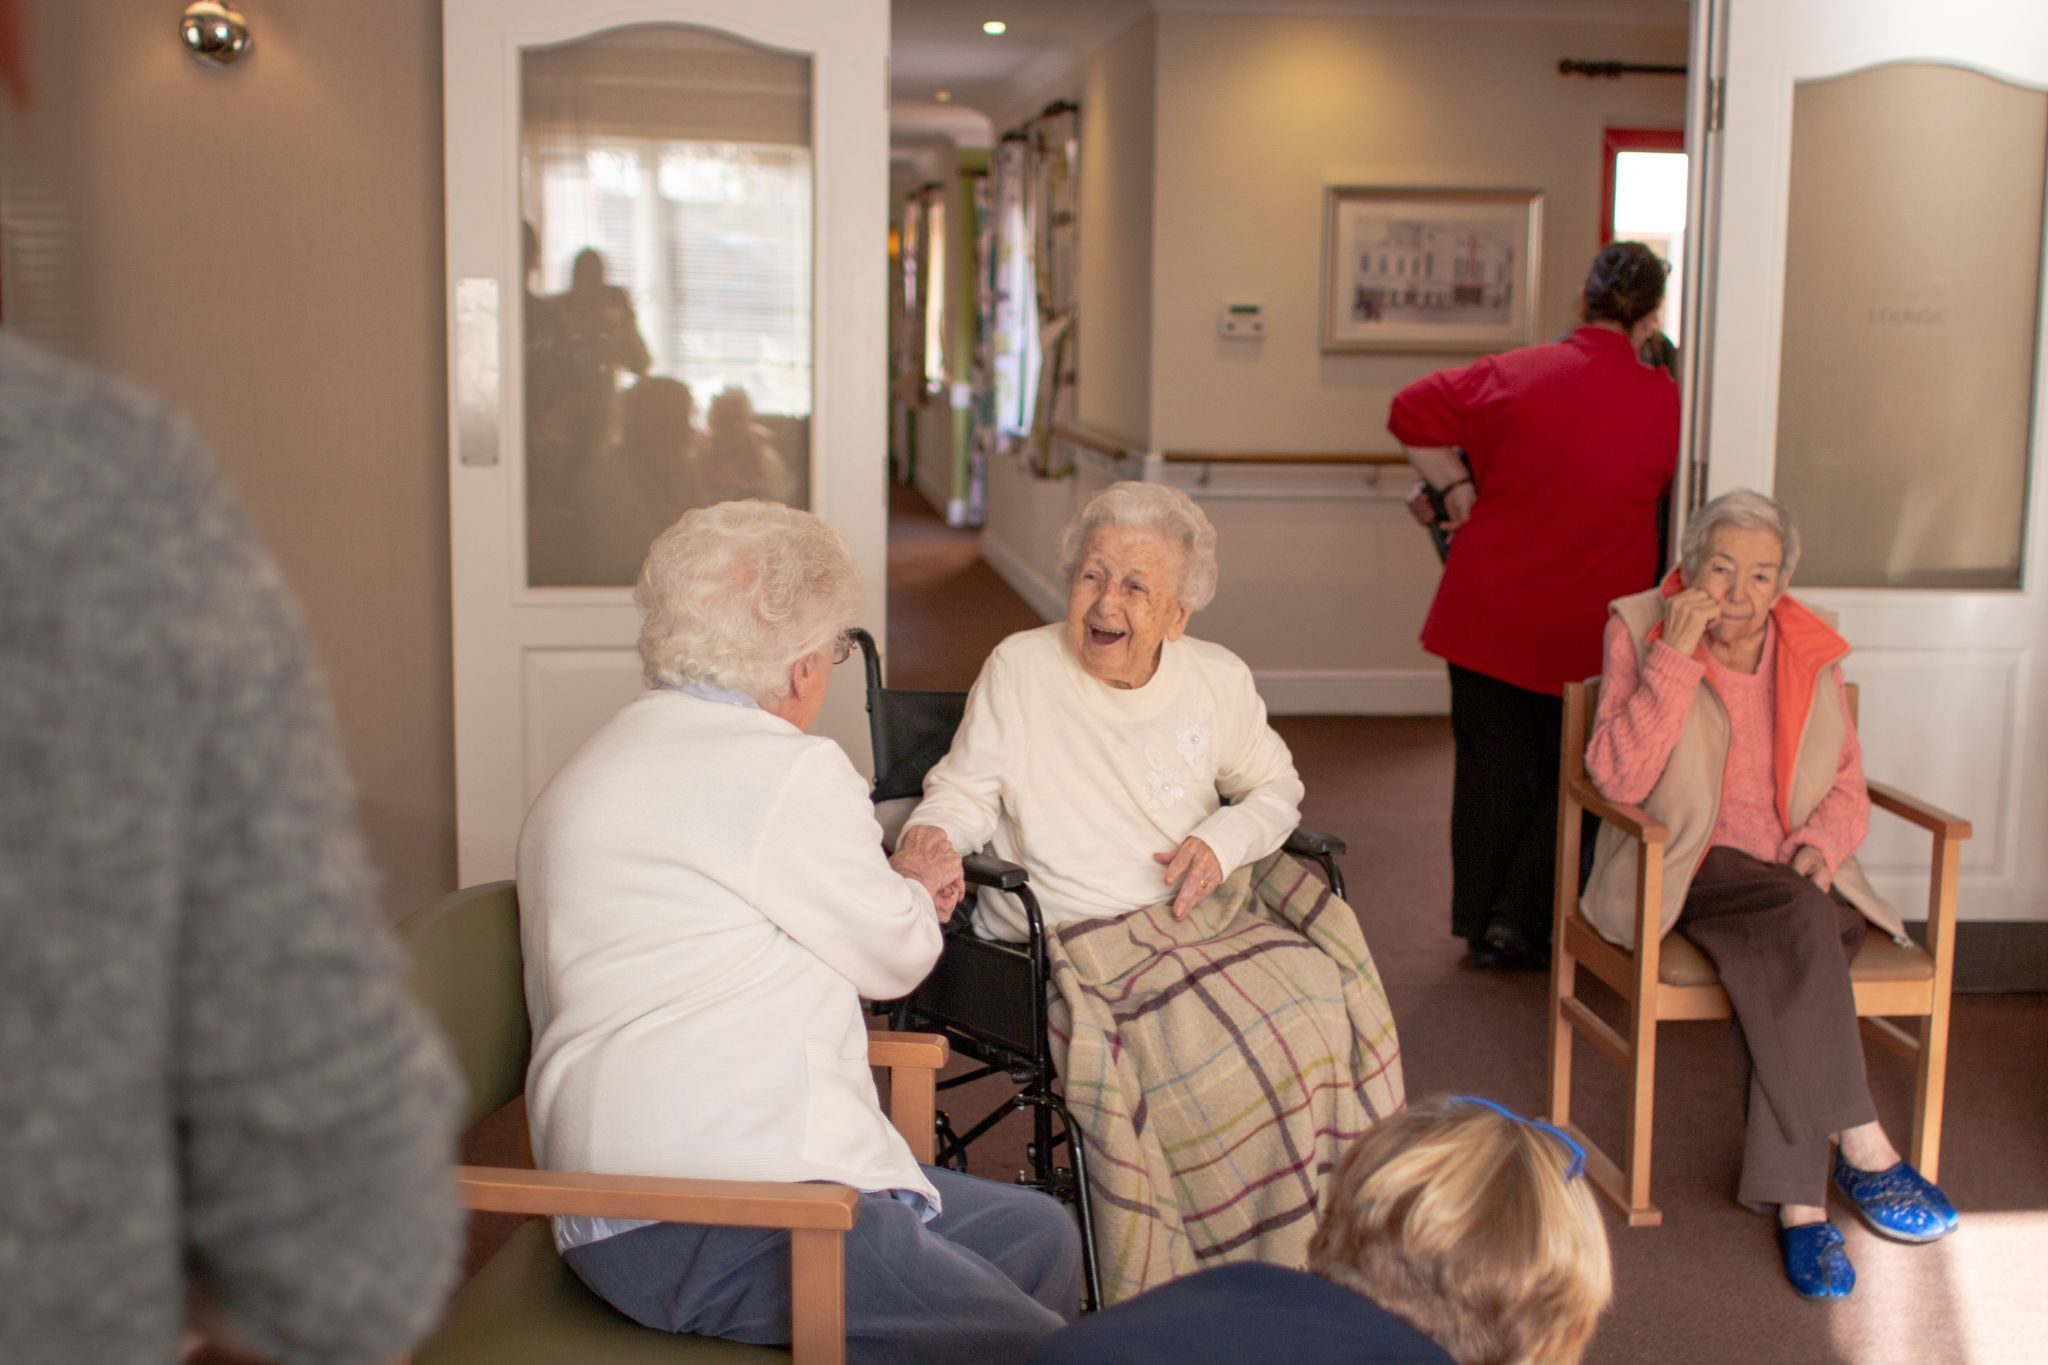 craig healthcare residents lifestyle photography hannah layford residents laughing